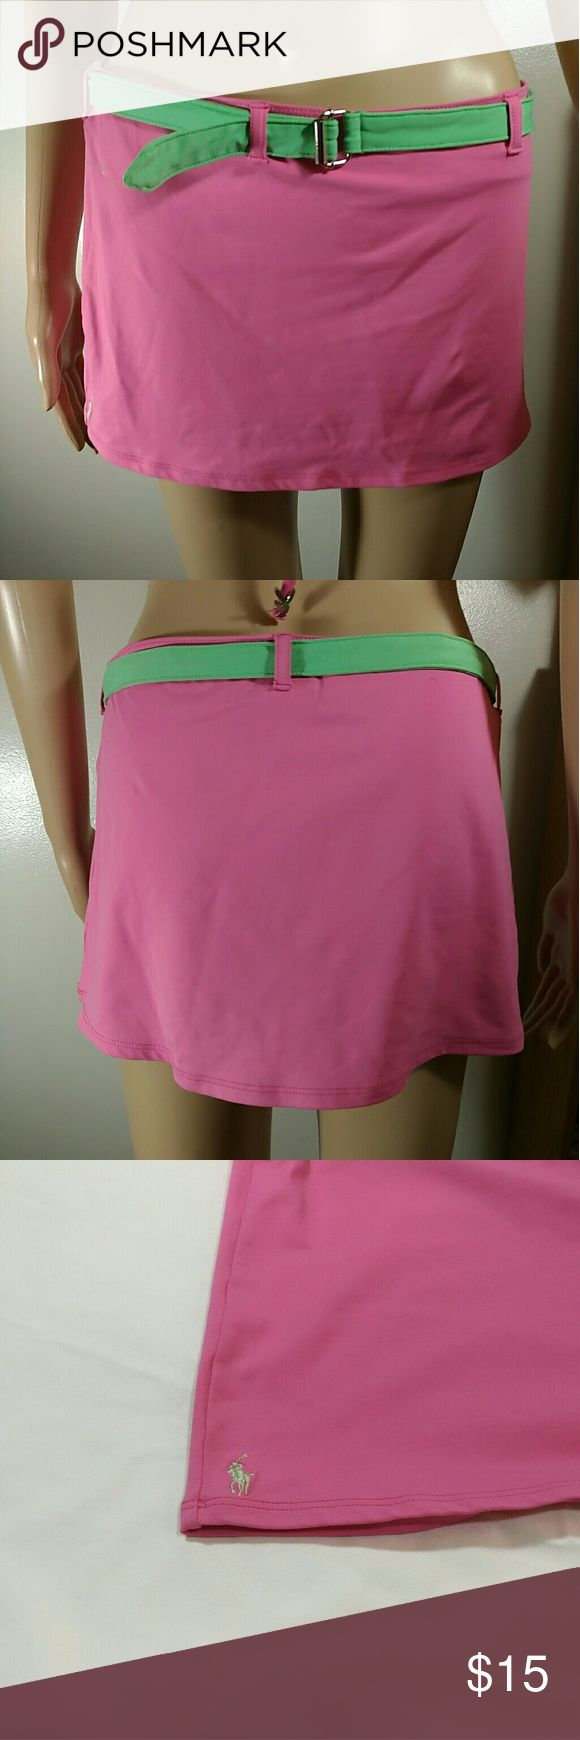 Ralph Lauren Bikini Pink Skirt With Green Belt S In overall good condition. No rips. No holes. No stains. (Self) 75% nylon 24% lycra spandex . (Lining) 82% nylon 18% lycra spandex. Size Small. Please check my pictures posted for details and if you have any questions, please feel free to ask. (B)   * no trades * offers discounts with bundles * color may vary slightly Ralph Lauren Swim